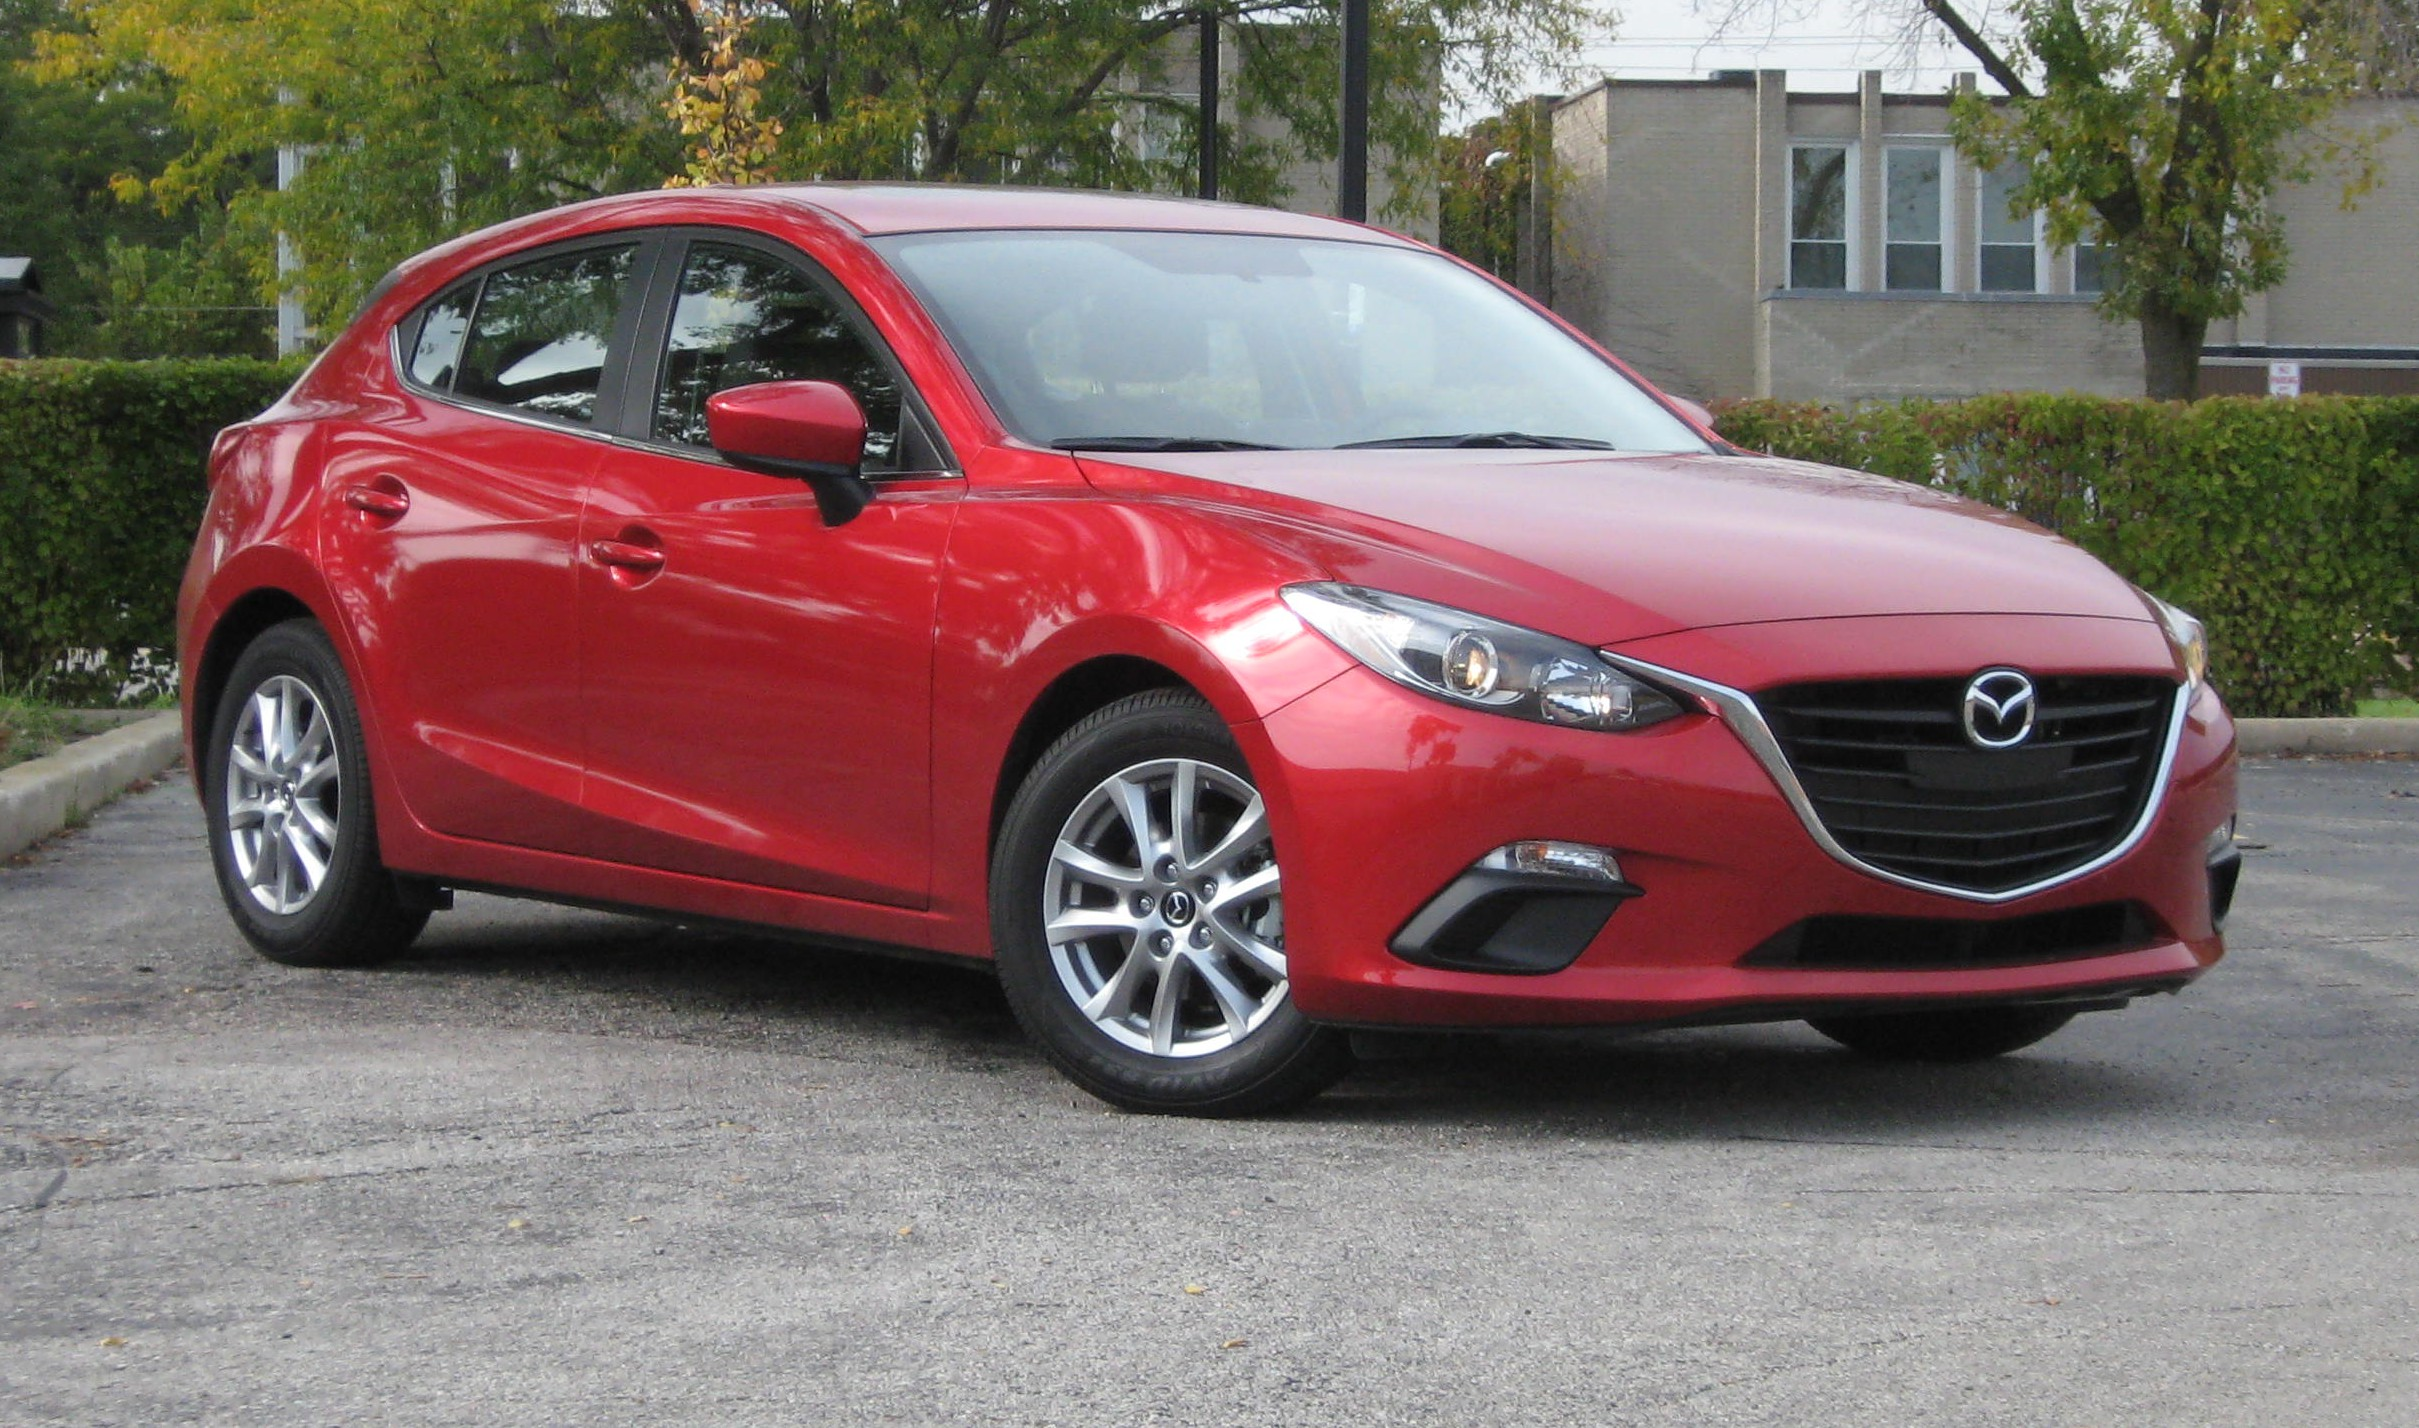 test drive 2014 mazda 3 i 5 door grand touring the. Black Bedroom Furniture Sets. Home Design Ideas